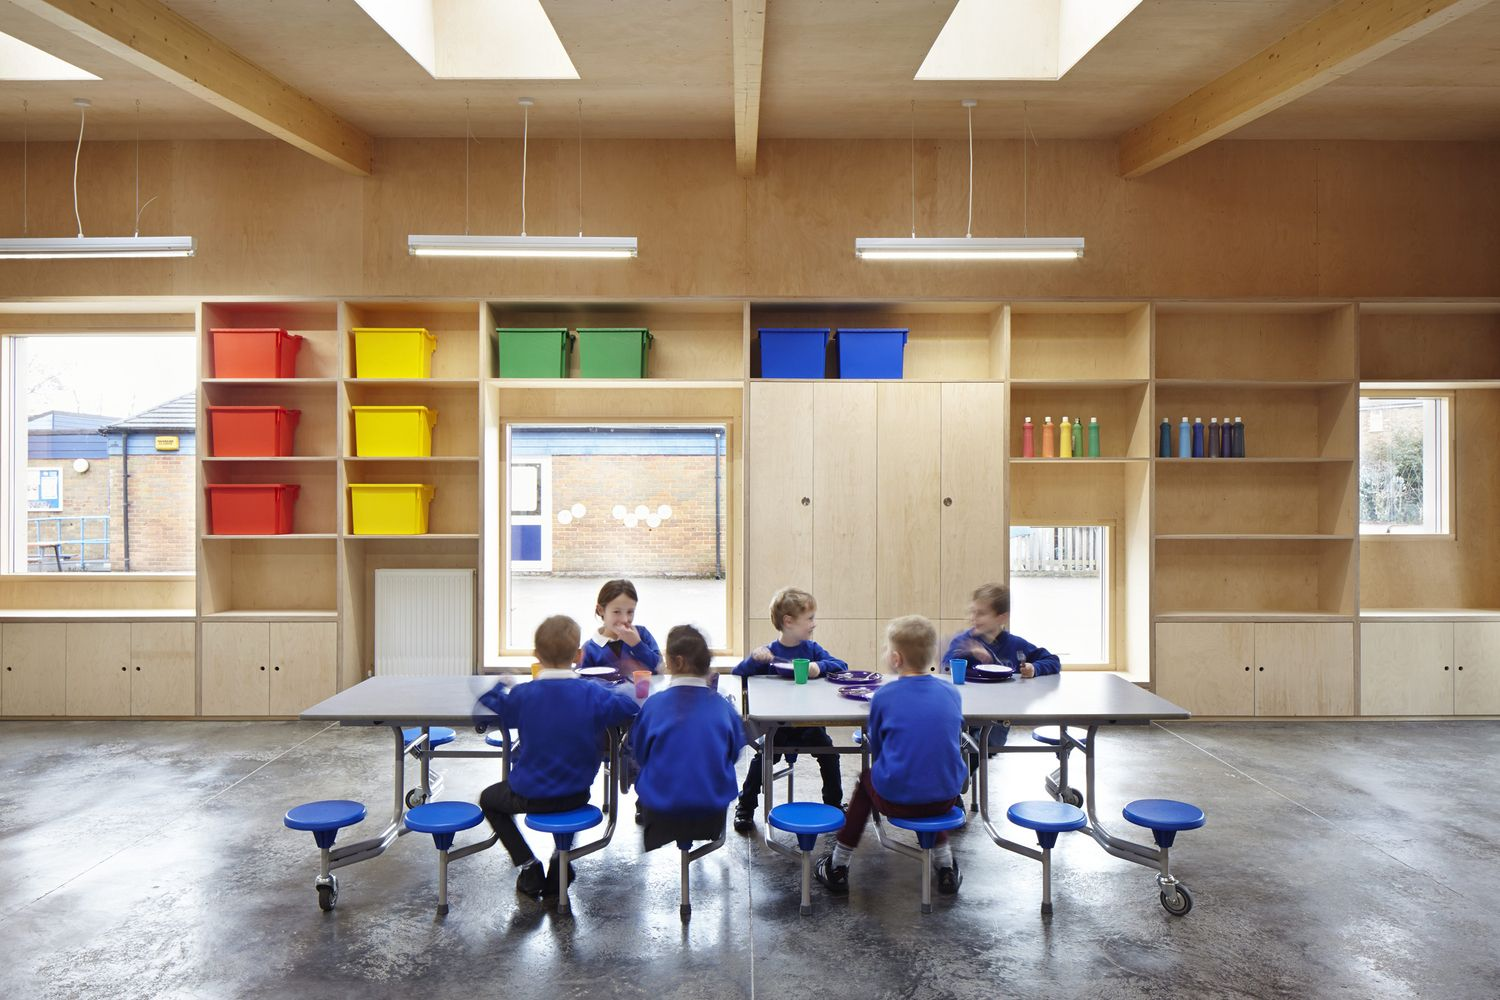 Gallery of Prestwood Infant School Dining Hall / De Rosee Sa - 3